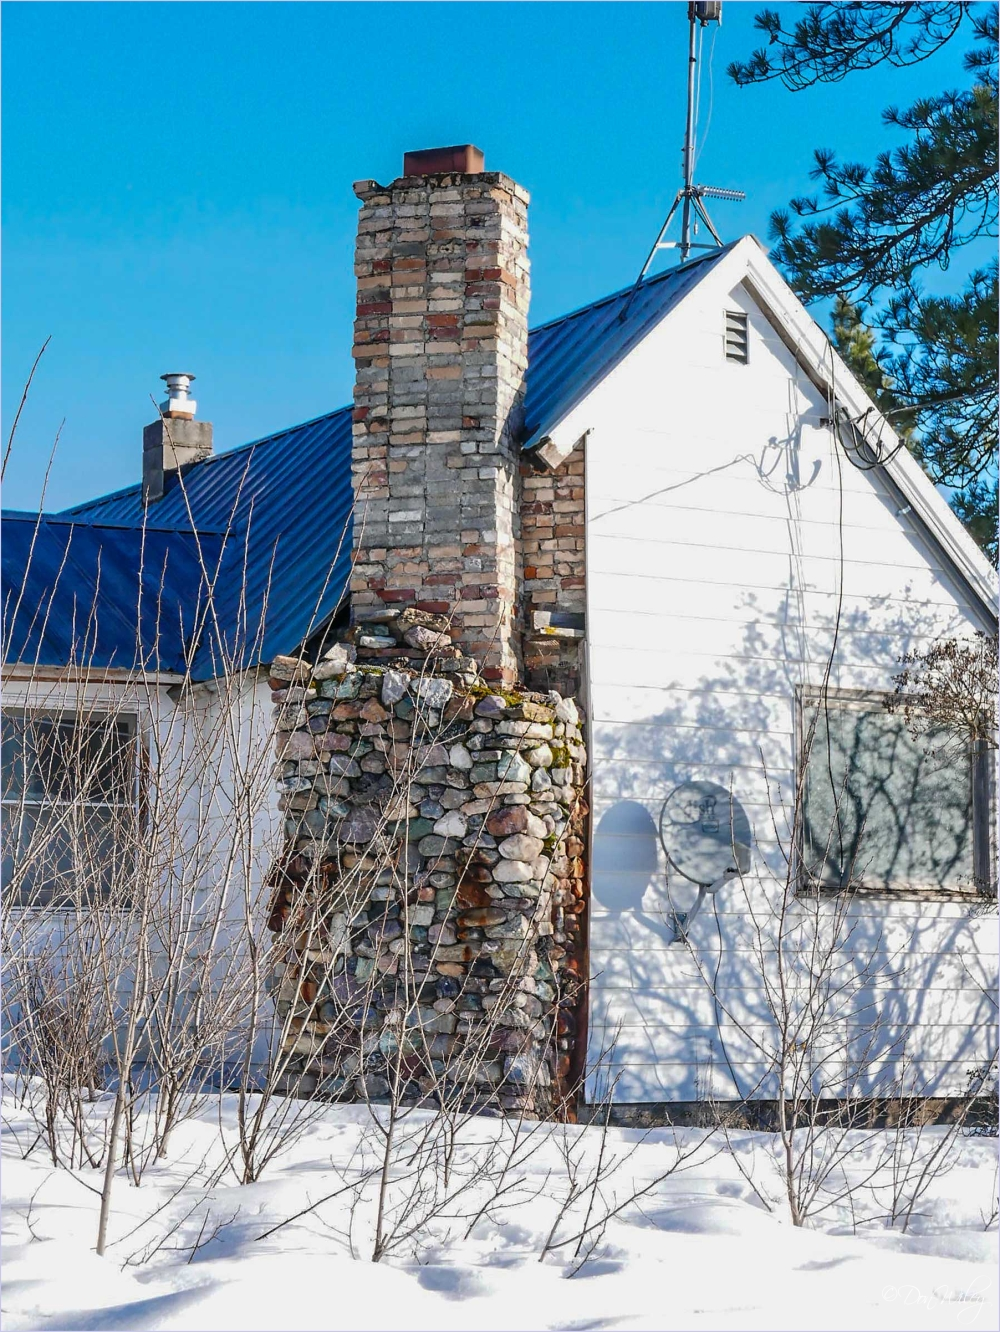 Stone and Brick Chimney